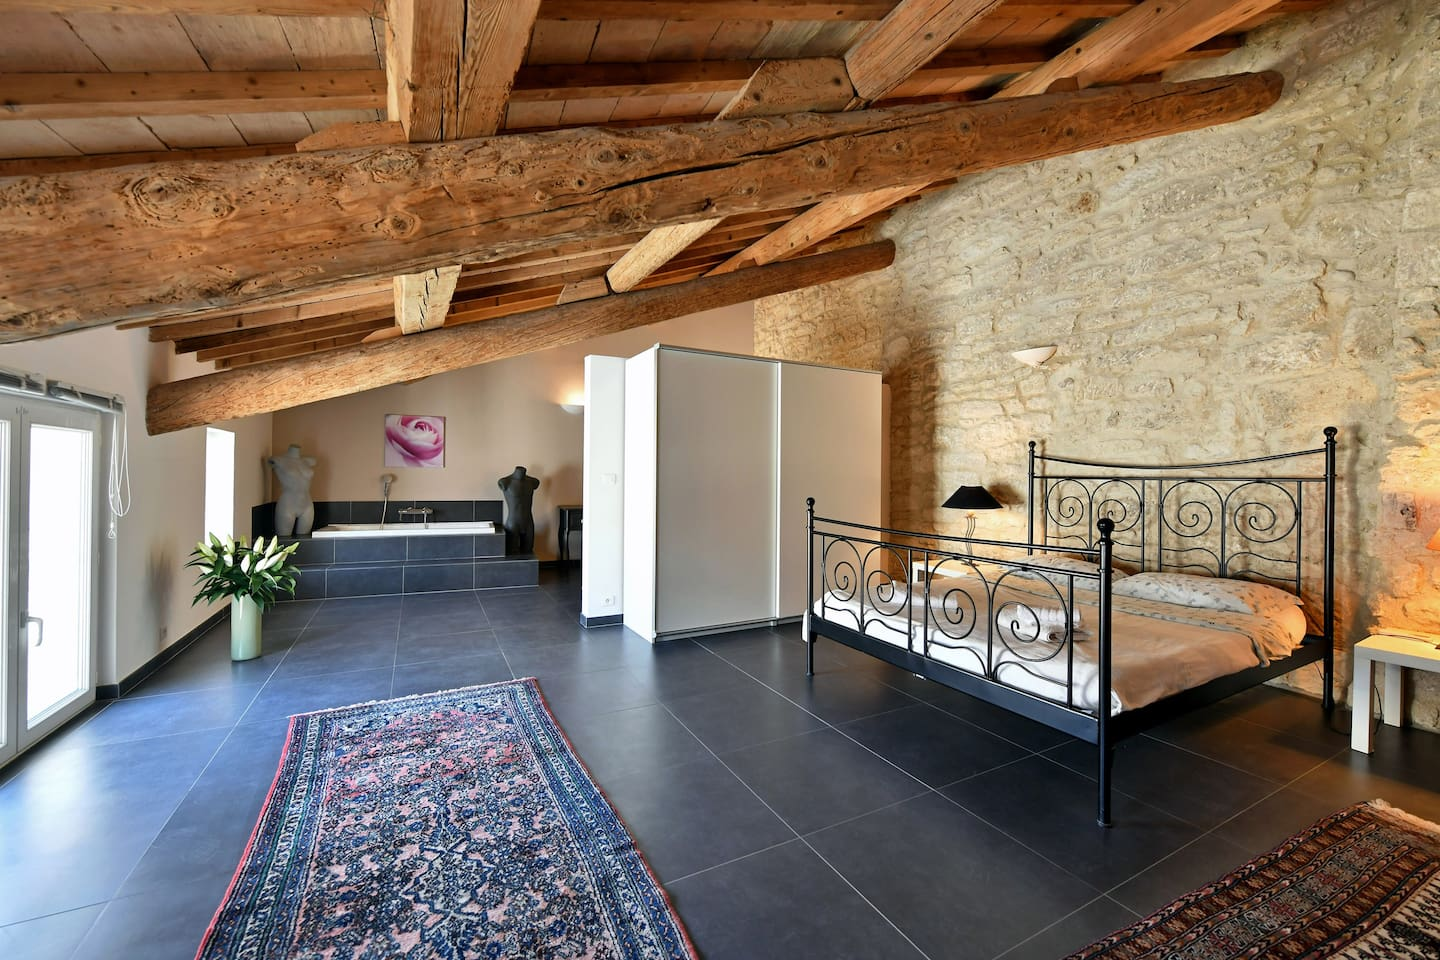 Main bedroom with double bed, 14th century ceiling and walls and 21st century bathroom, air conditioning for the summer and underfloor heating for the winter